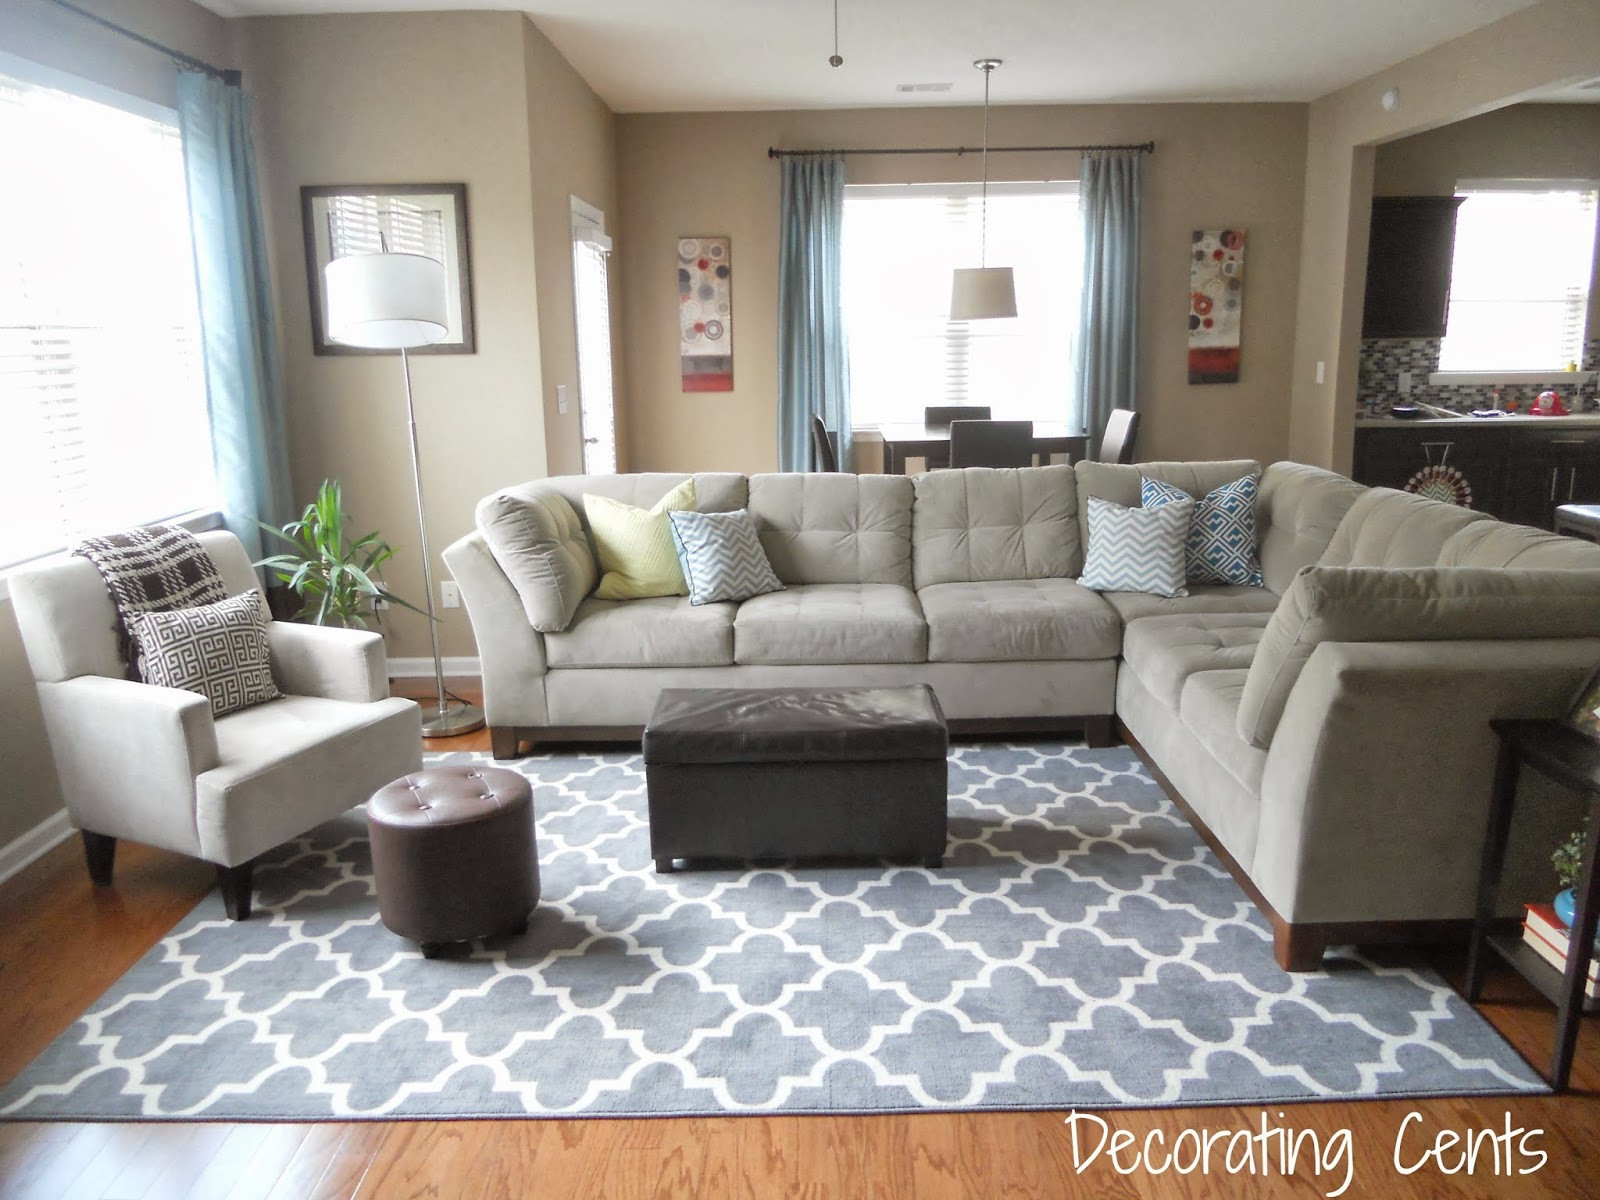 Best ideas about Living Room Rug Ideas . Save or Pin Decorating Cents New Family Room Rug Now.